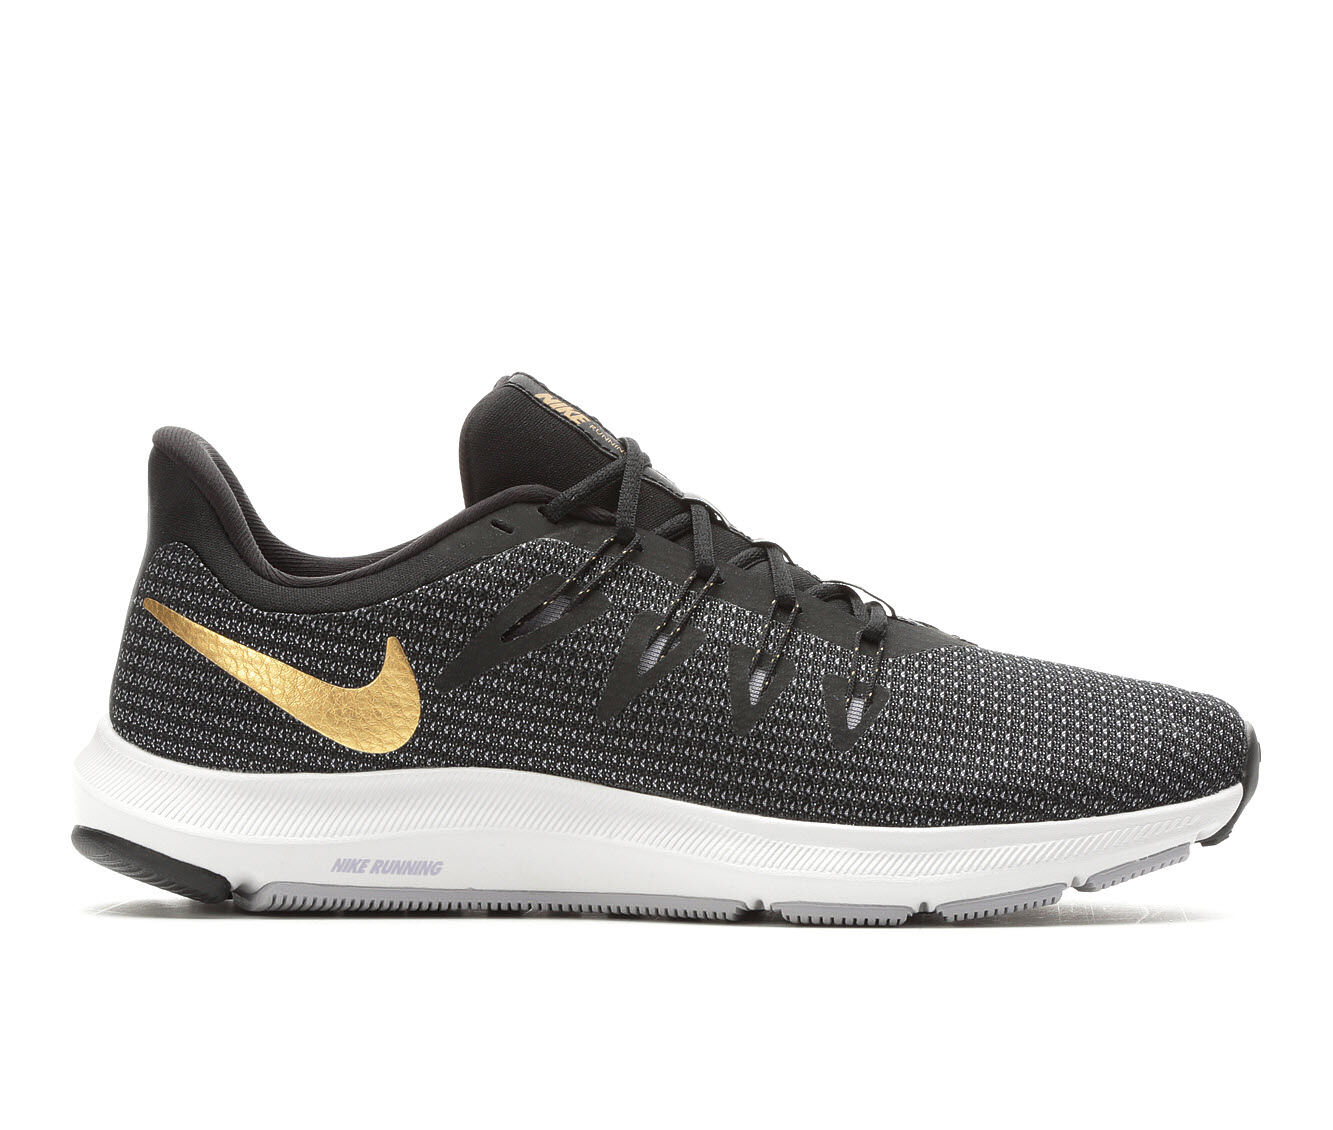 Adorable Women's Nike Quest Running Shoes Black/Gld/Smoke